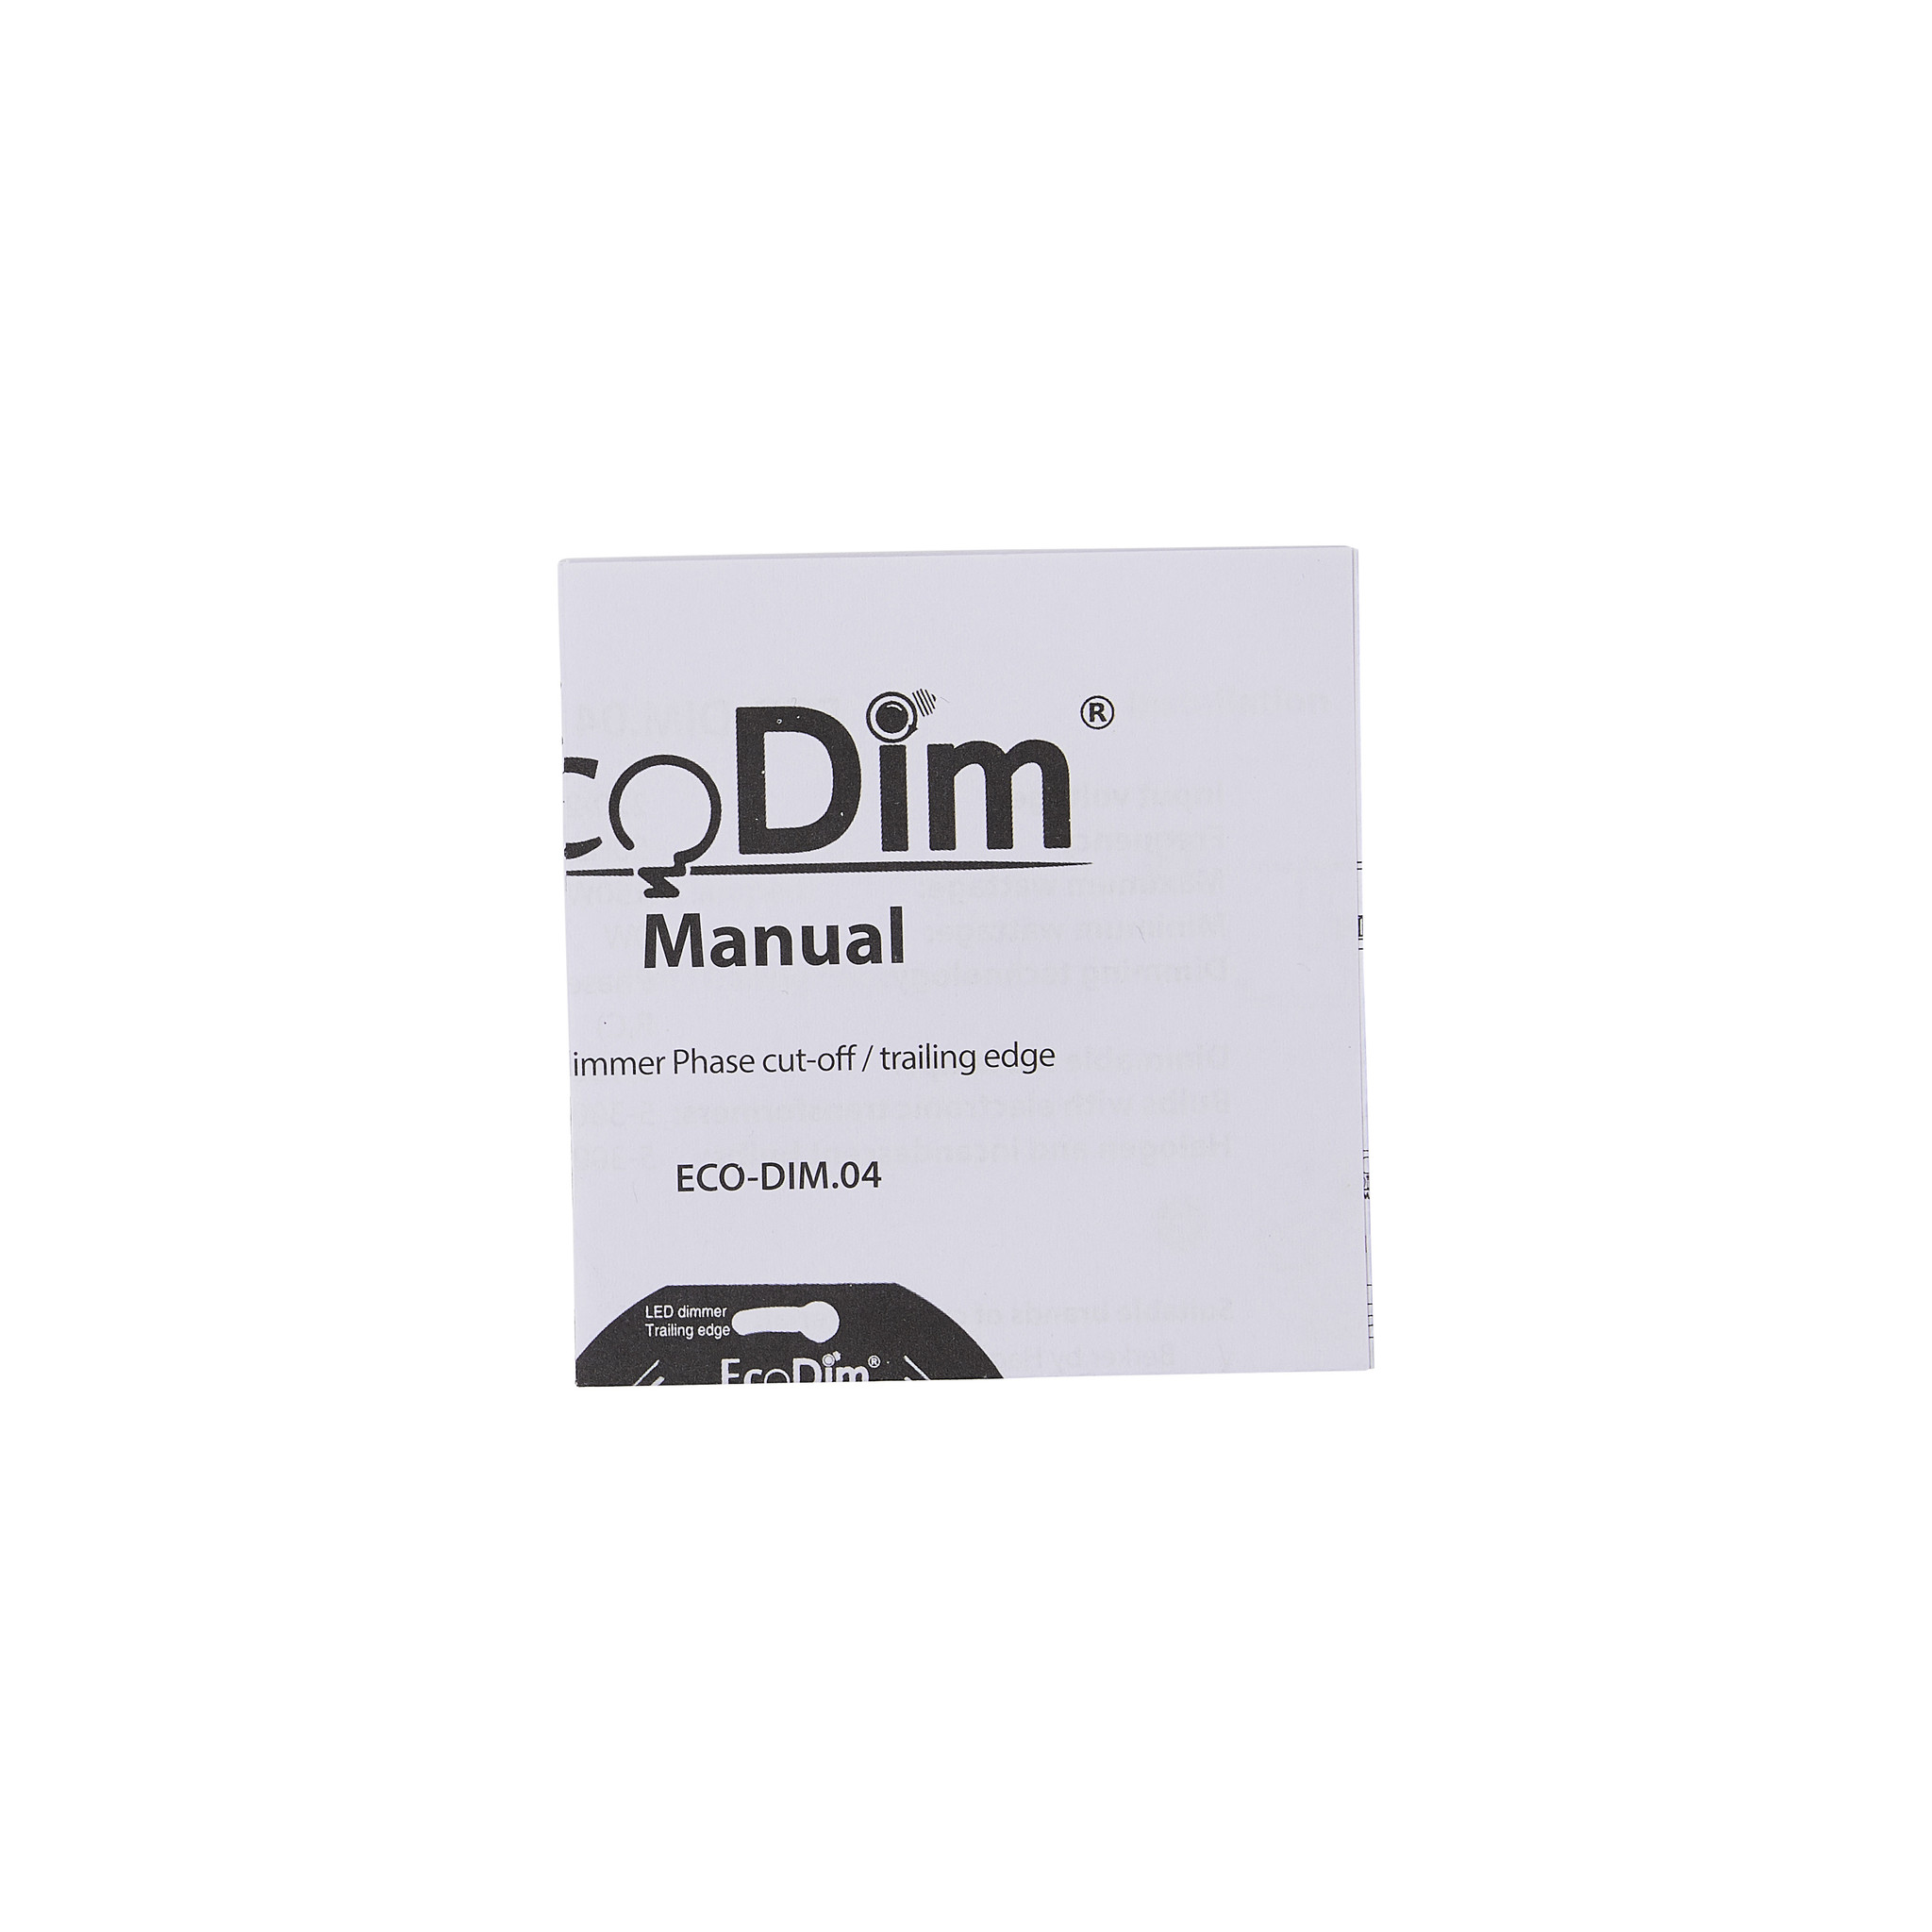 ECO-DIM.04 Led dimmer universeel 0-150W fase afsnijding (RC)